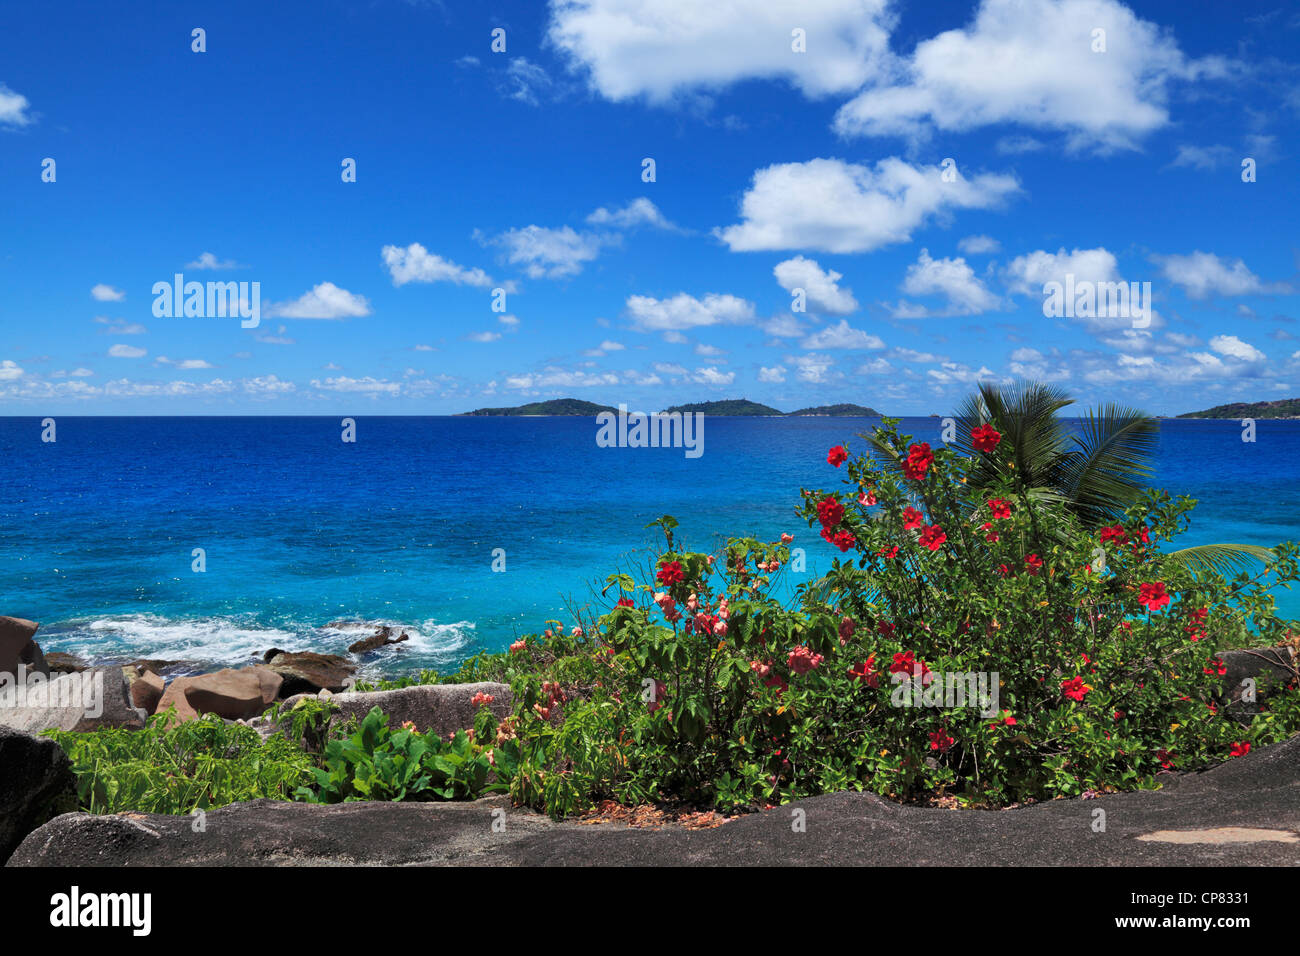 Tropical beauty of the Baie Ste Anne as seen from the north end of La Digue in the Seychelles - Stock Image